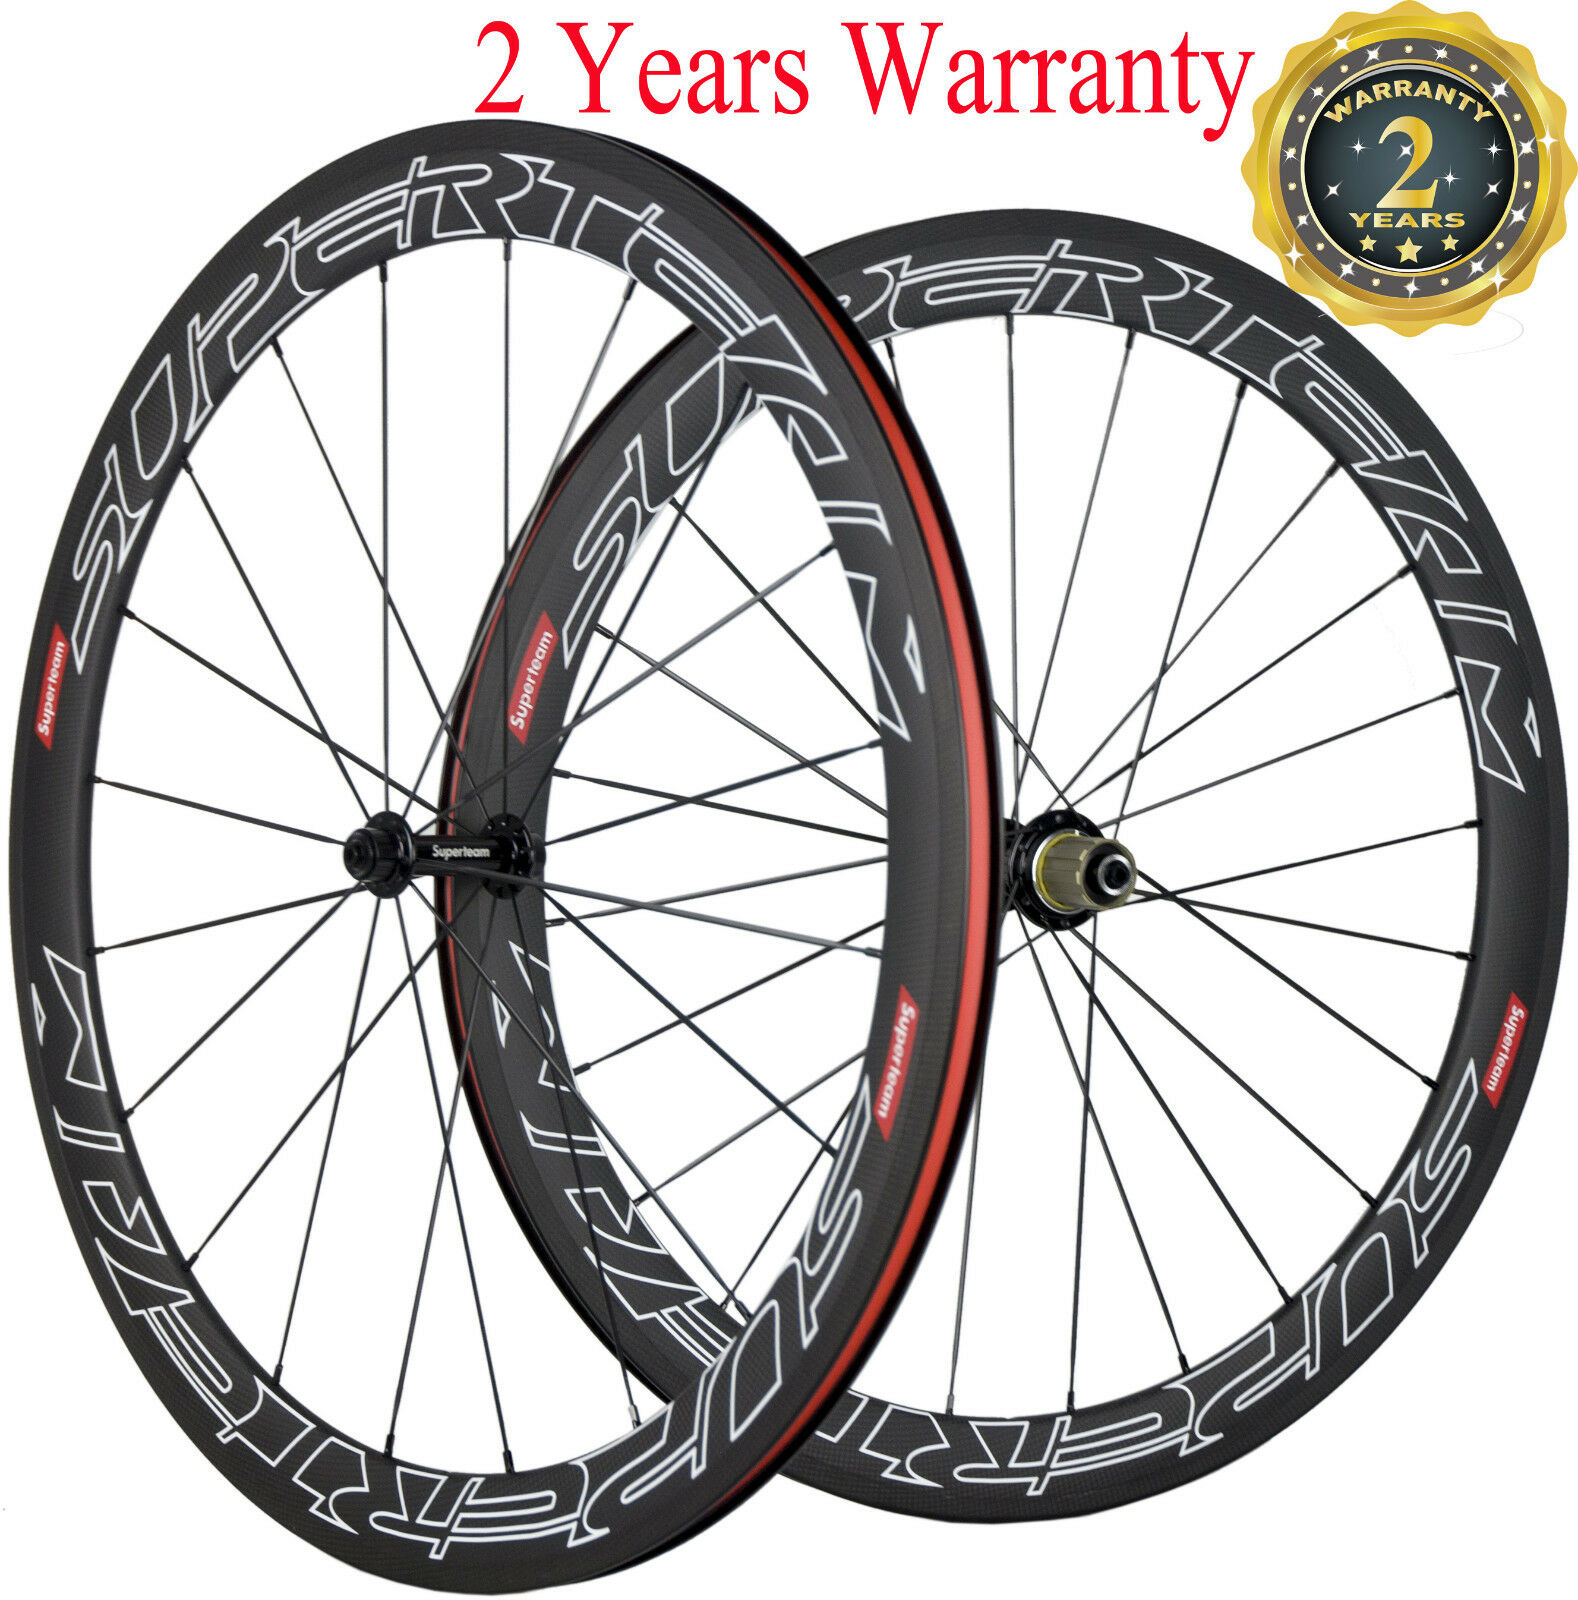 Superteam Carbon Wheelset 700C  50mm Full Carbon Fiber Wheels Race Bicycle Wheels  cheapest